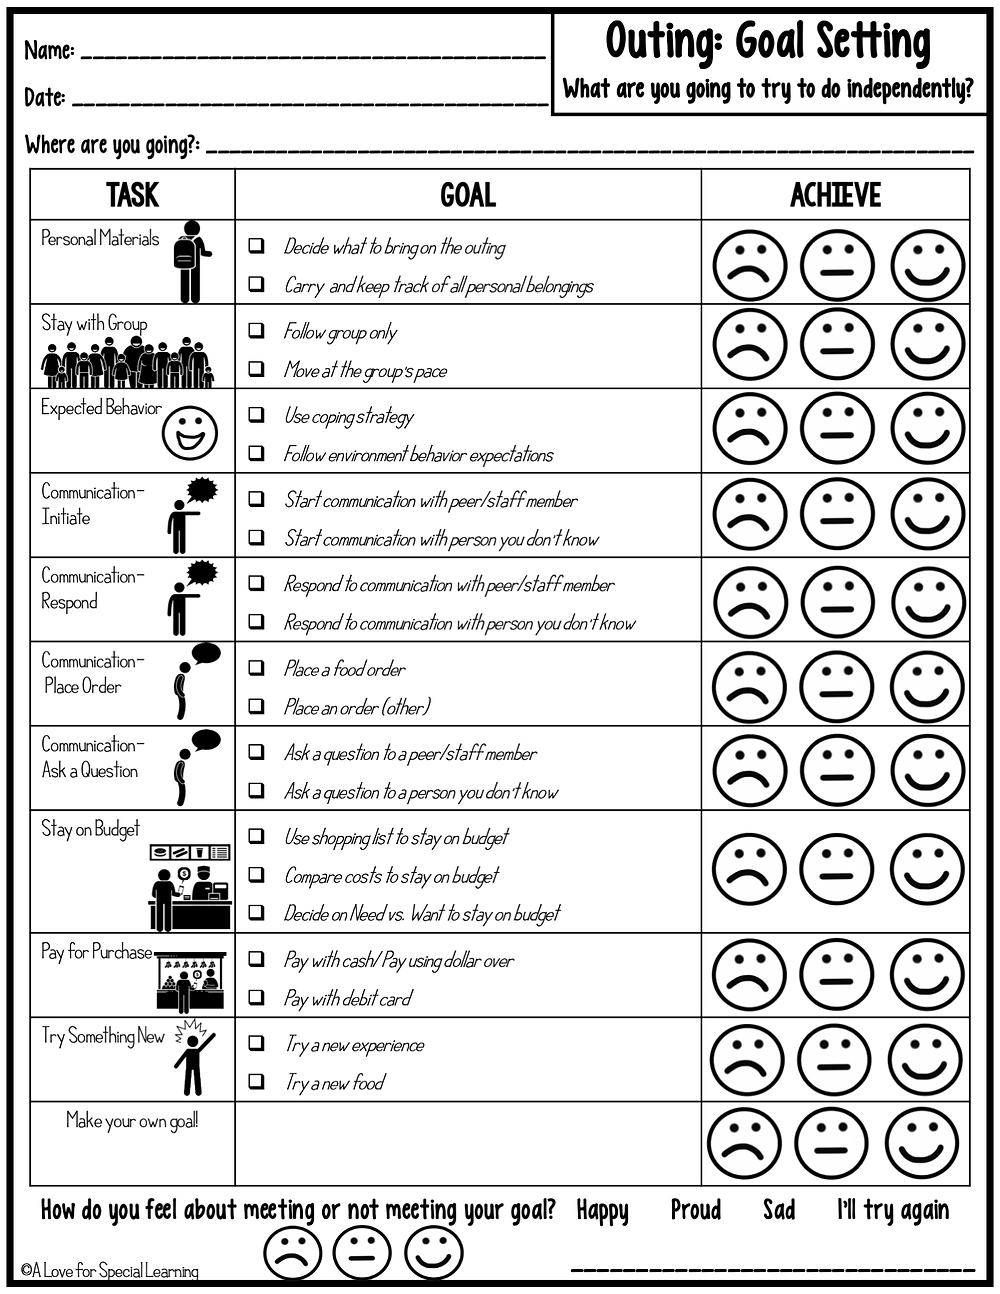 Worksheet with 10 goal setting options with visuals